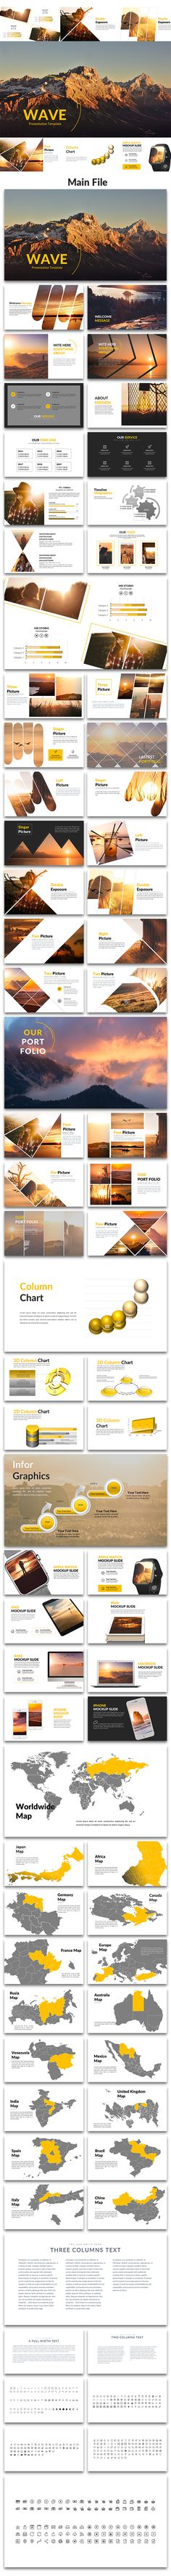 Wave - Creative PowerPoint Template - Creative #PowerPoint #Templates Download here: https://graphicriver.net/item/wave-creative-powerpoint-template/19501523?ref=alena994